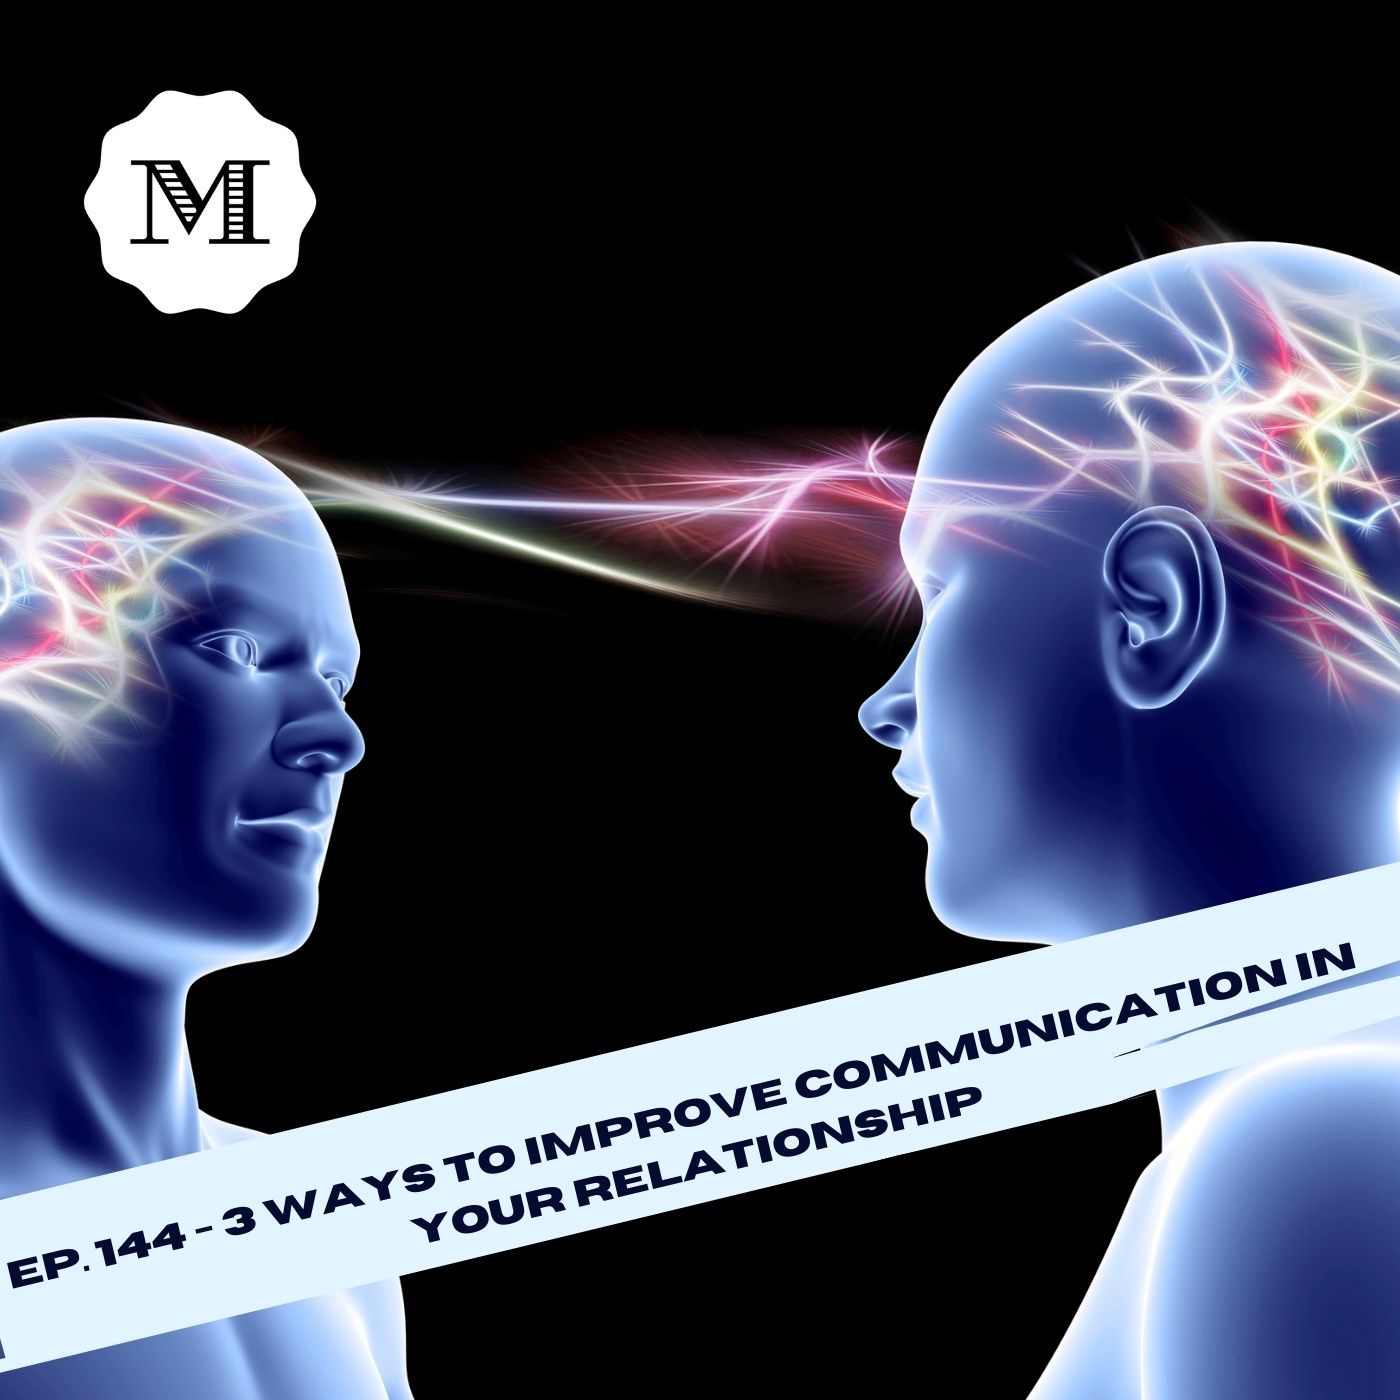 Ep. 144 Three ways to improve communication in your relationship